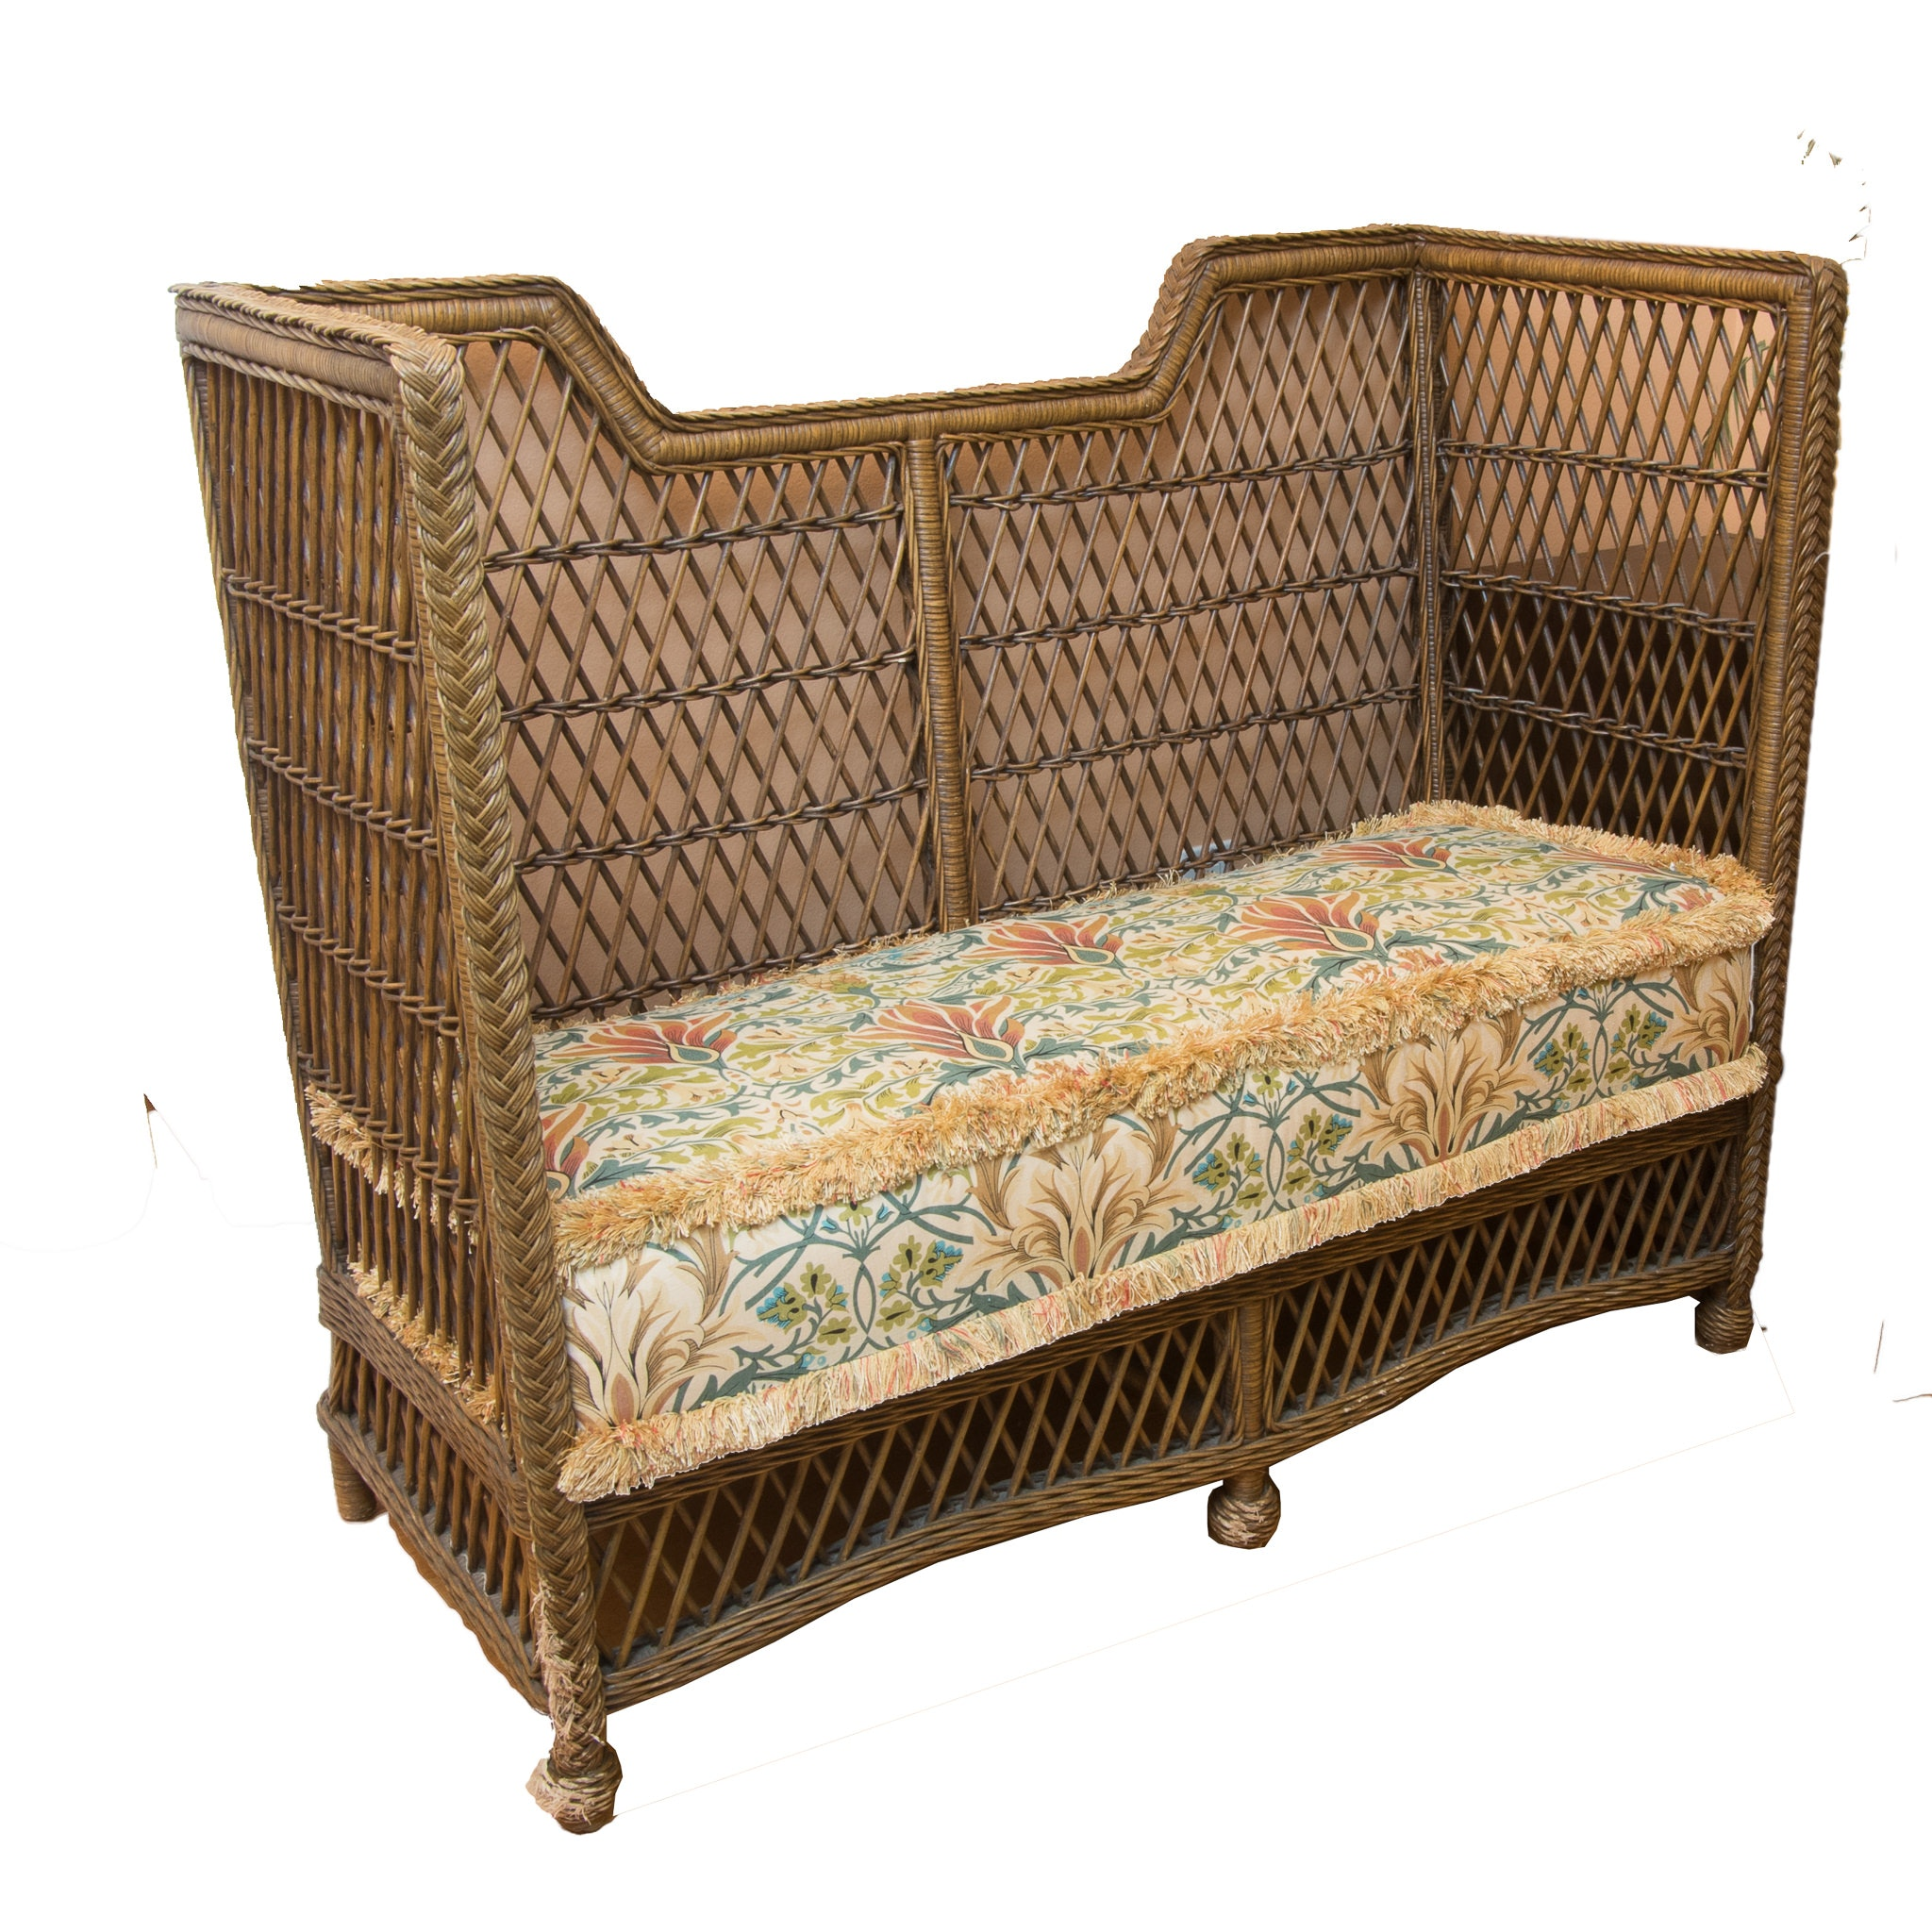 Contemporary Wicker Settee by Lane Furniture